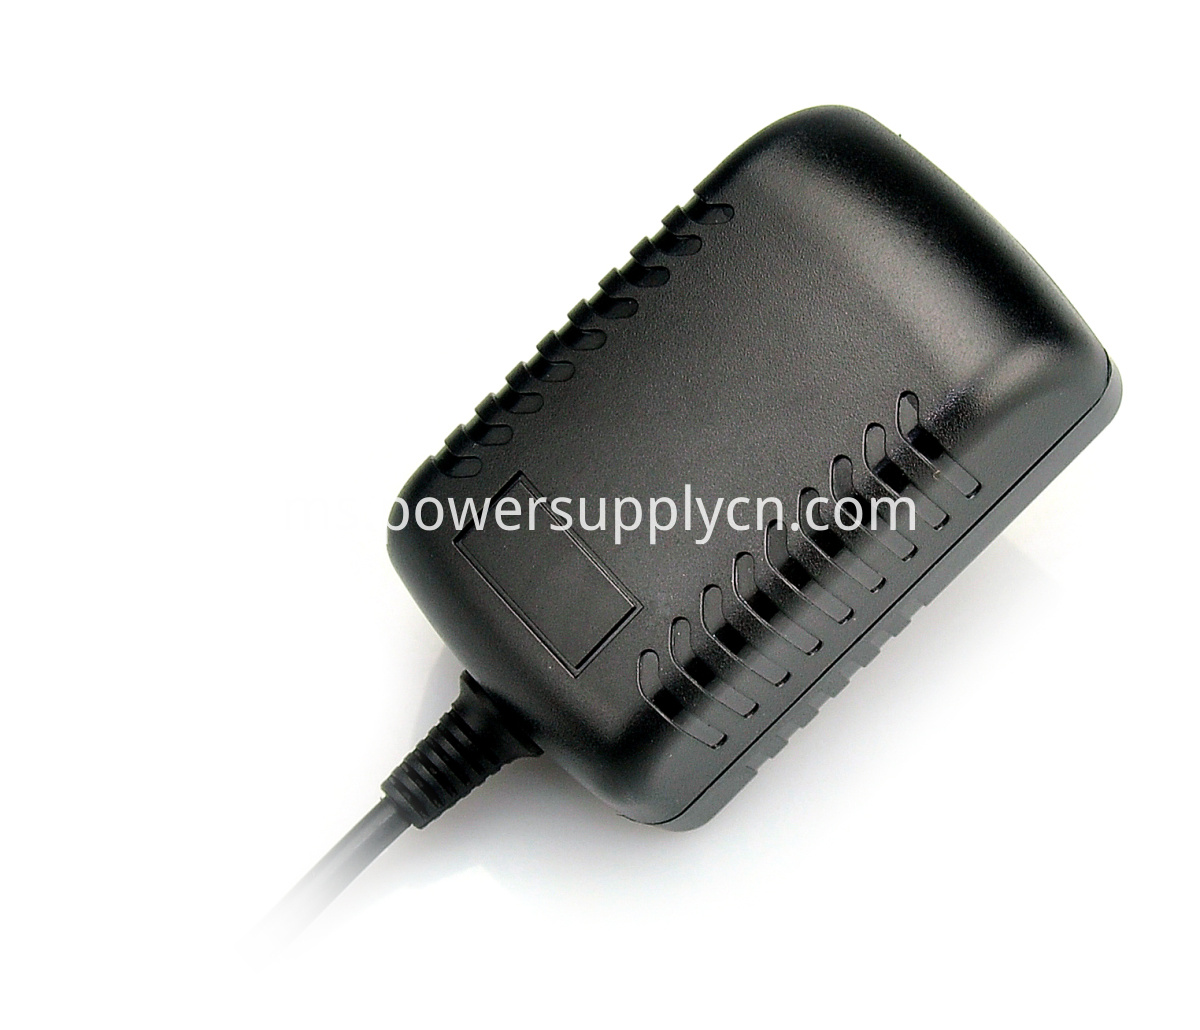 6v 1000ma power supply